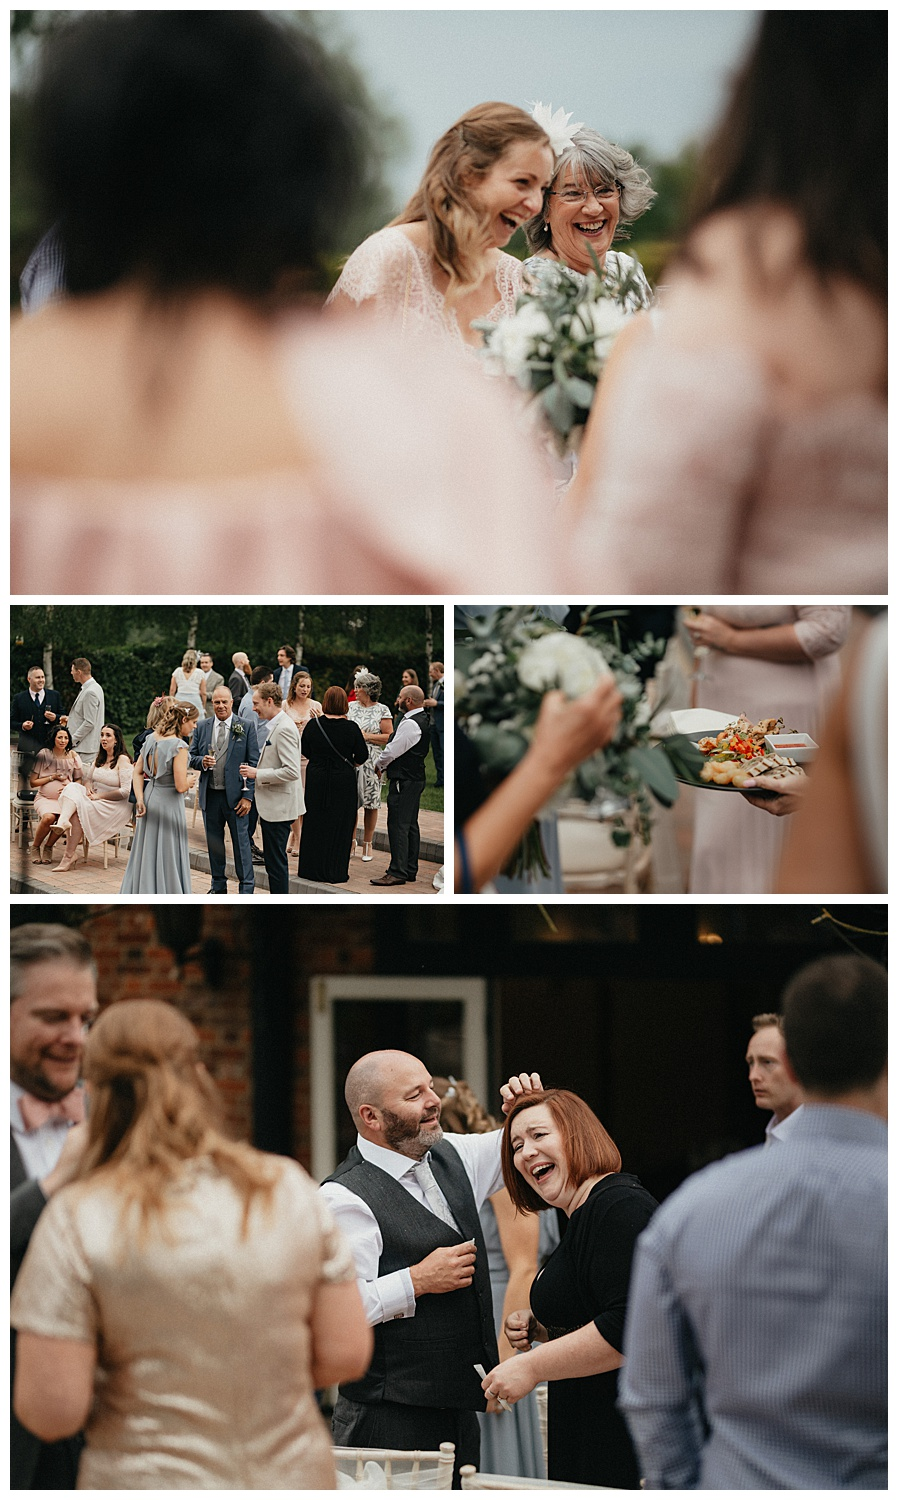 Weddings-at-Crondon-Park-the-wedding-guests-enjoy-food-and-drinks